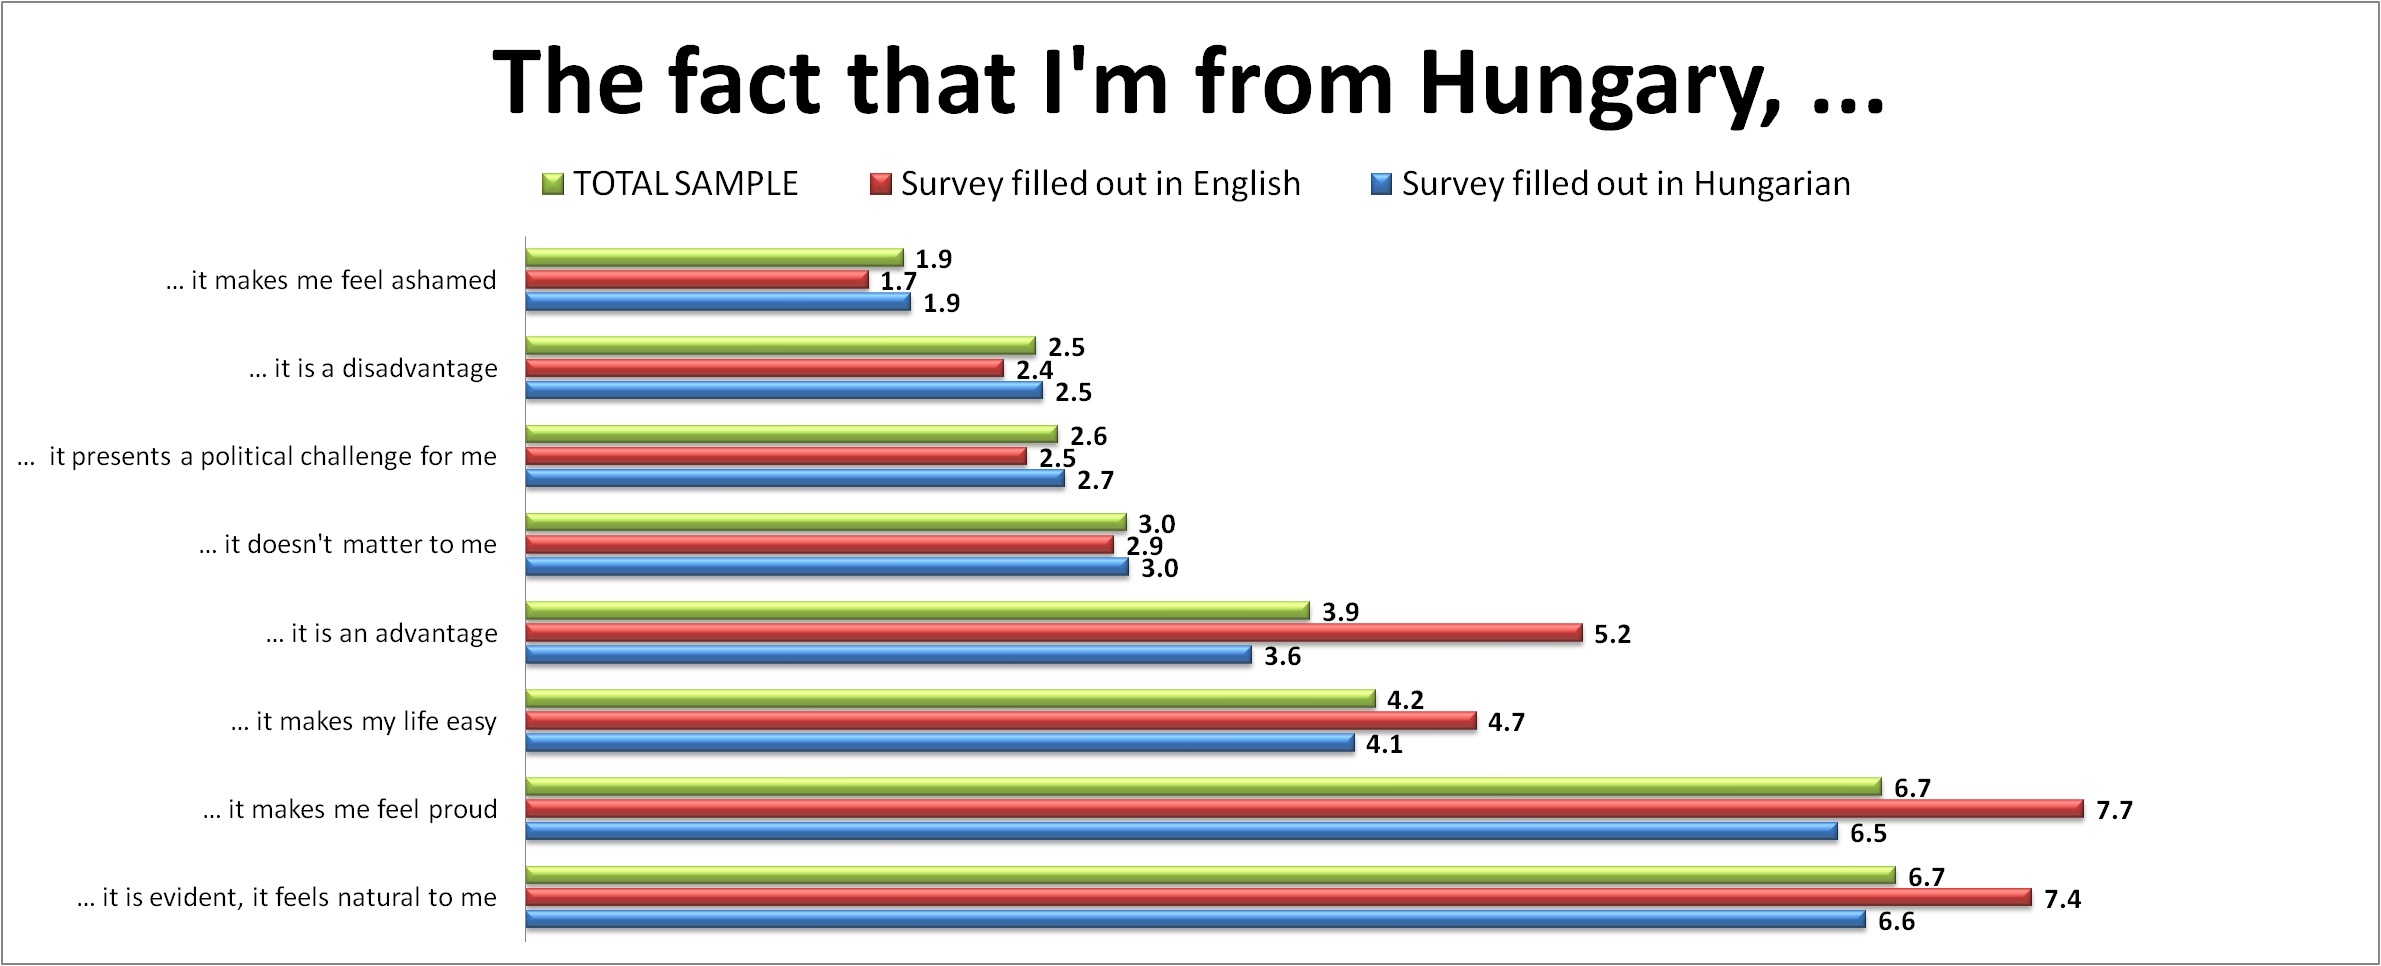 the_fact_that_i_am_from_hungary.jpg